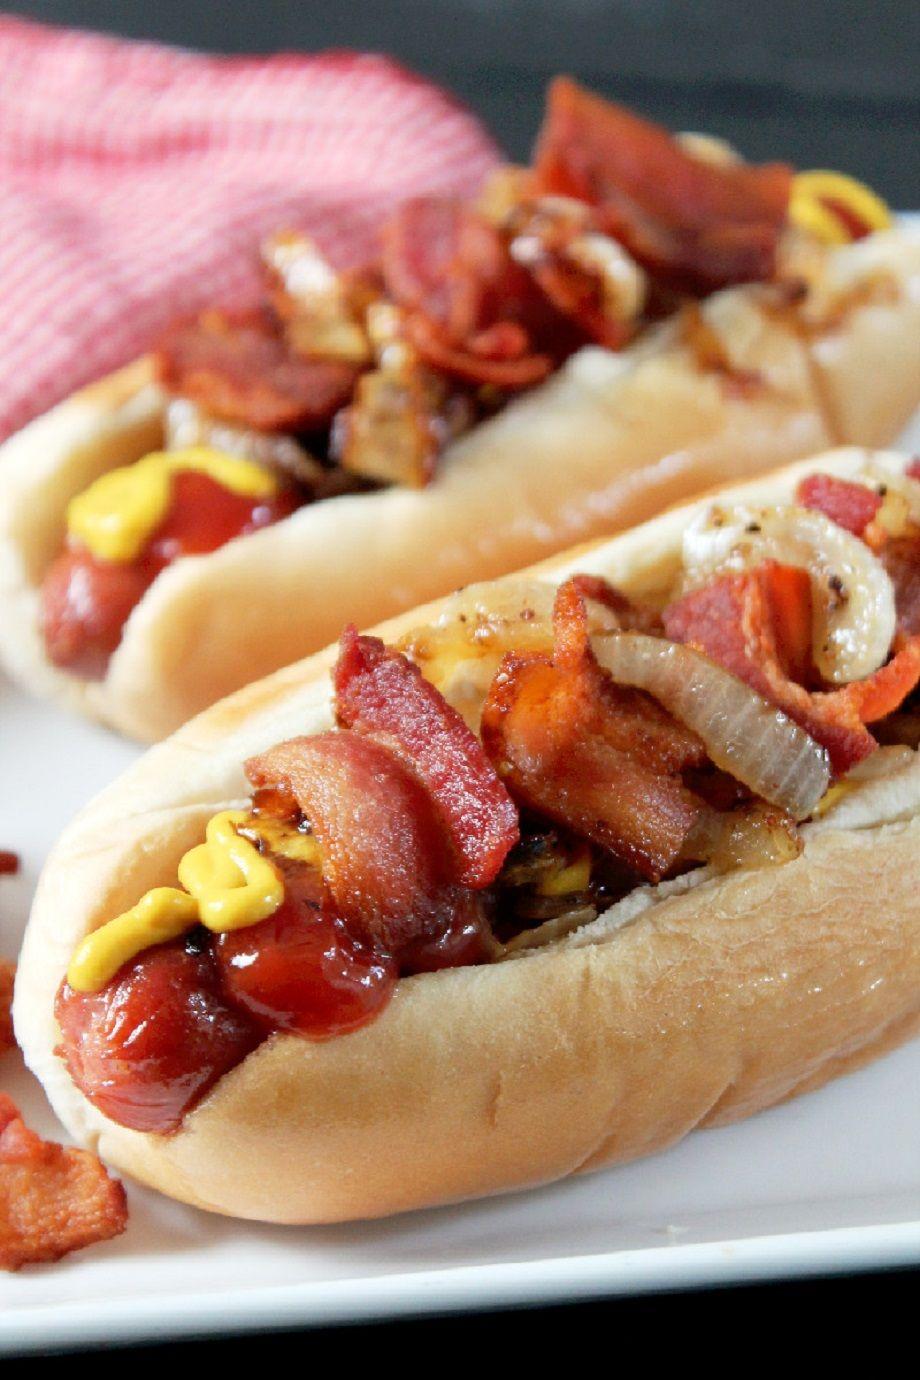 Bacon Hot Dogs are one my favorite ways to eat a hot dog